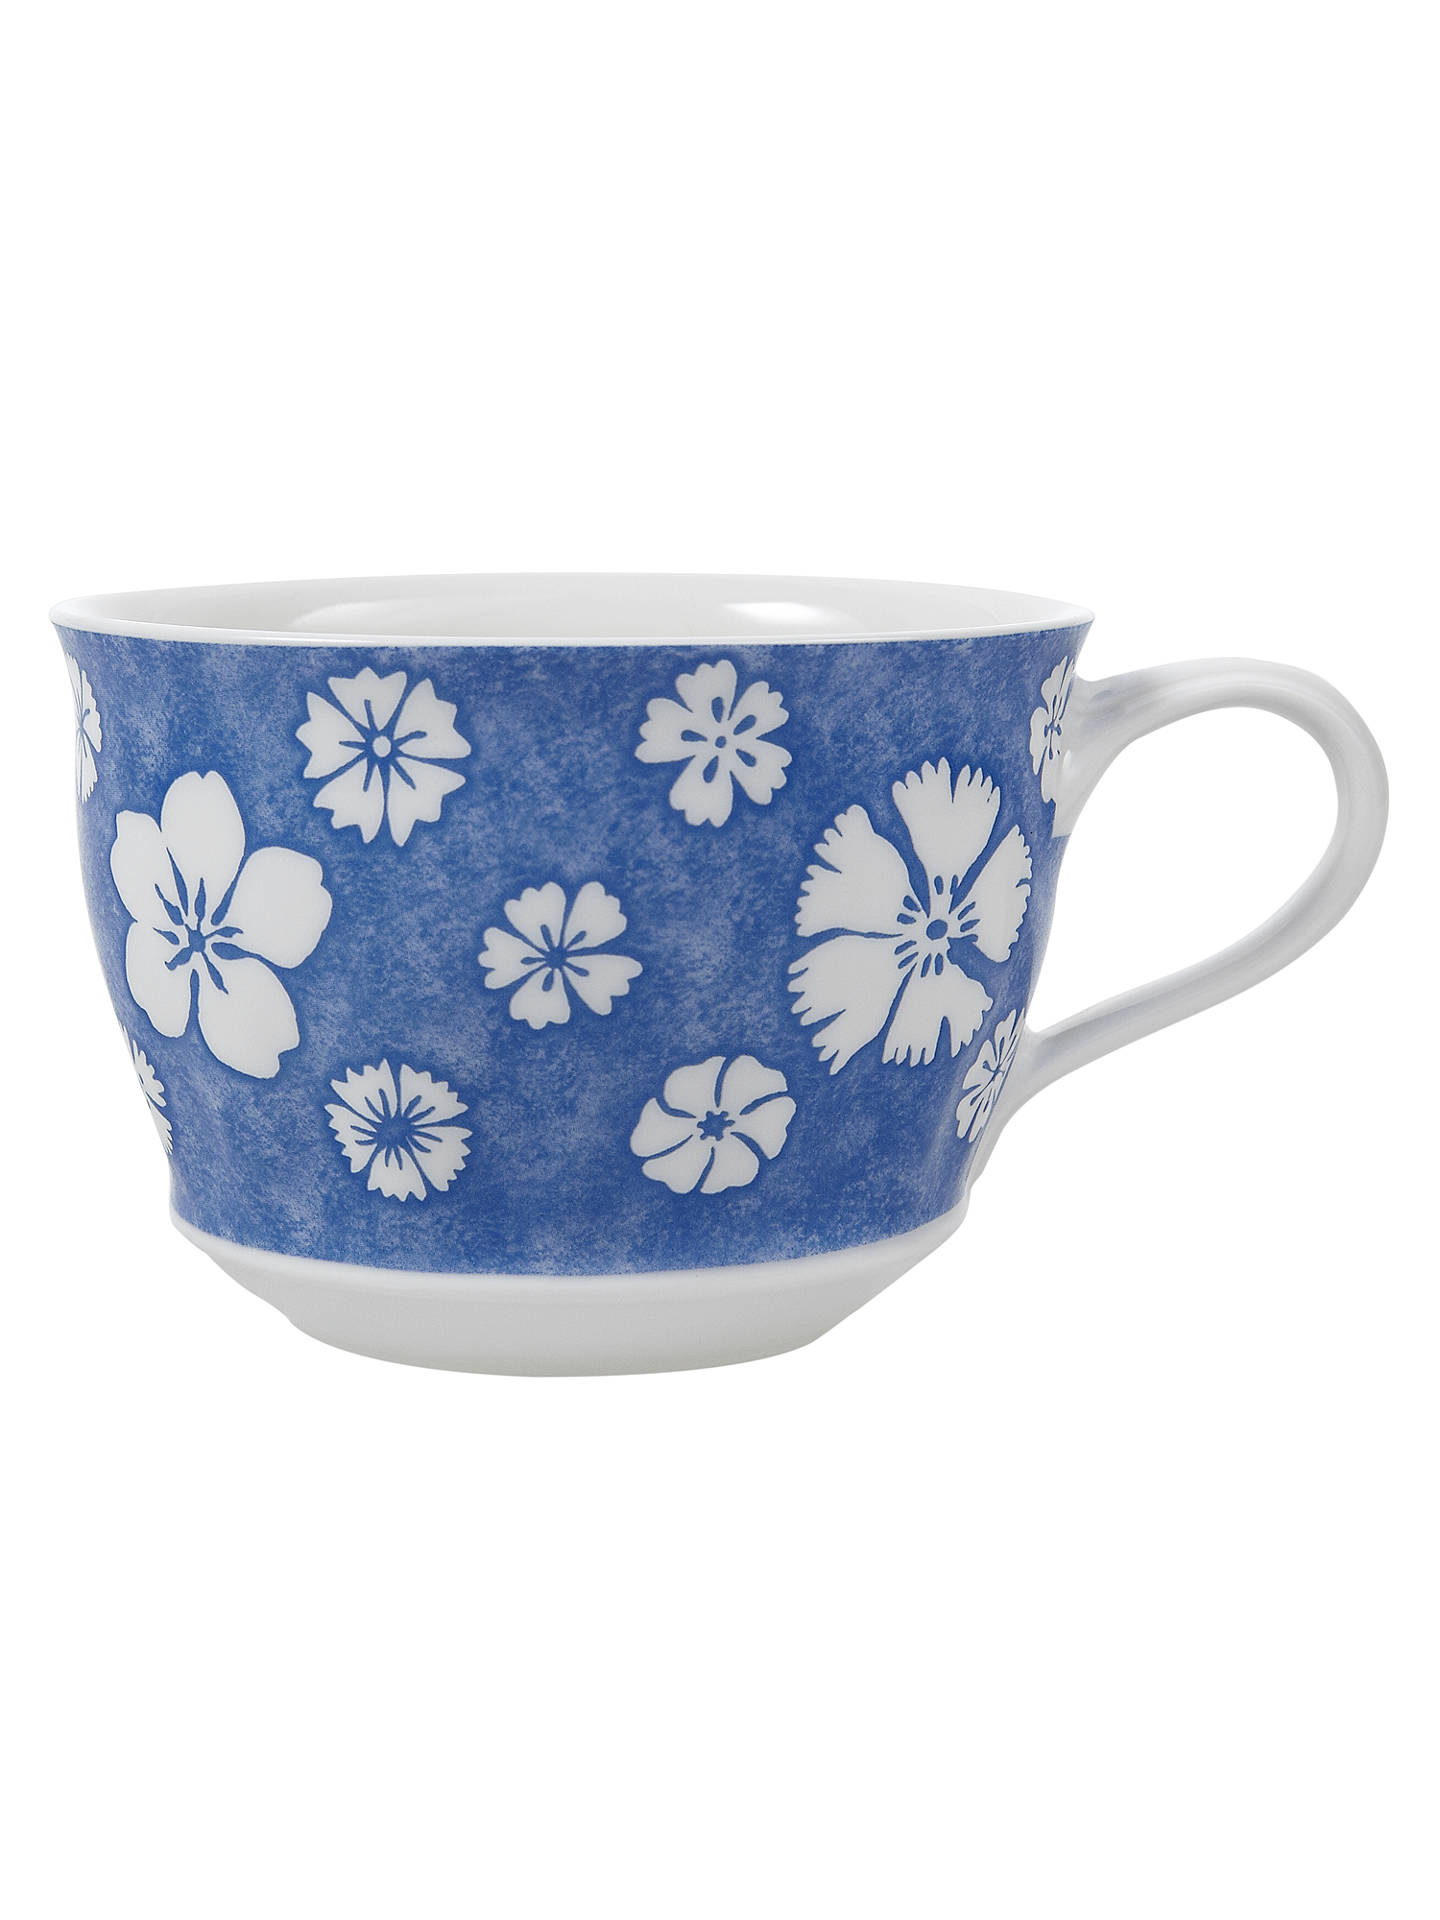 Villeroy & Boch Farmhouse Touch Breakfast Cup,0.4L, Blue/White at ...